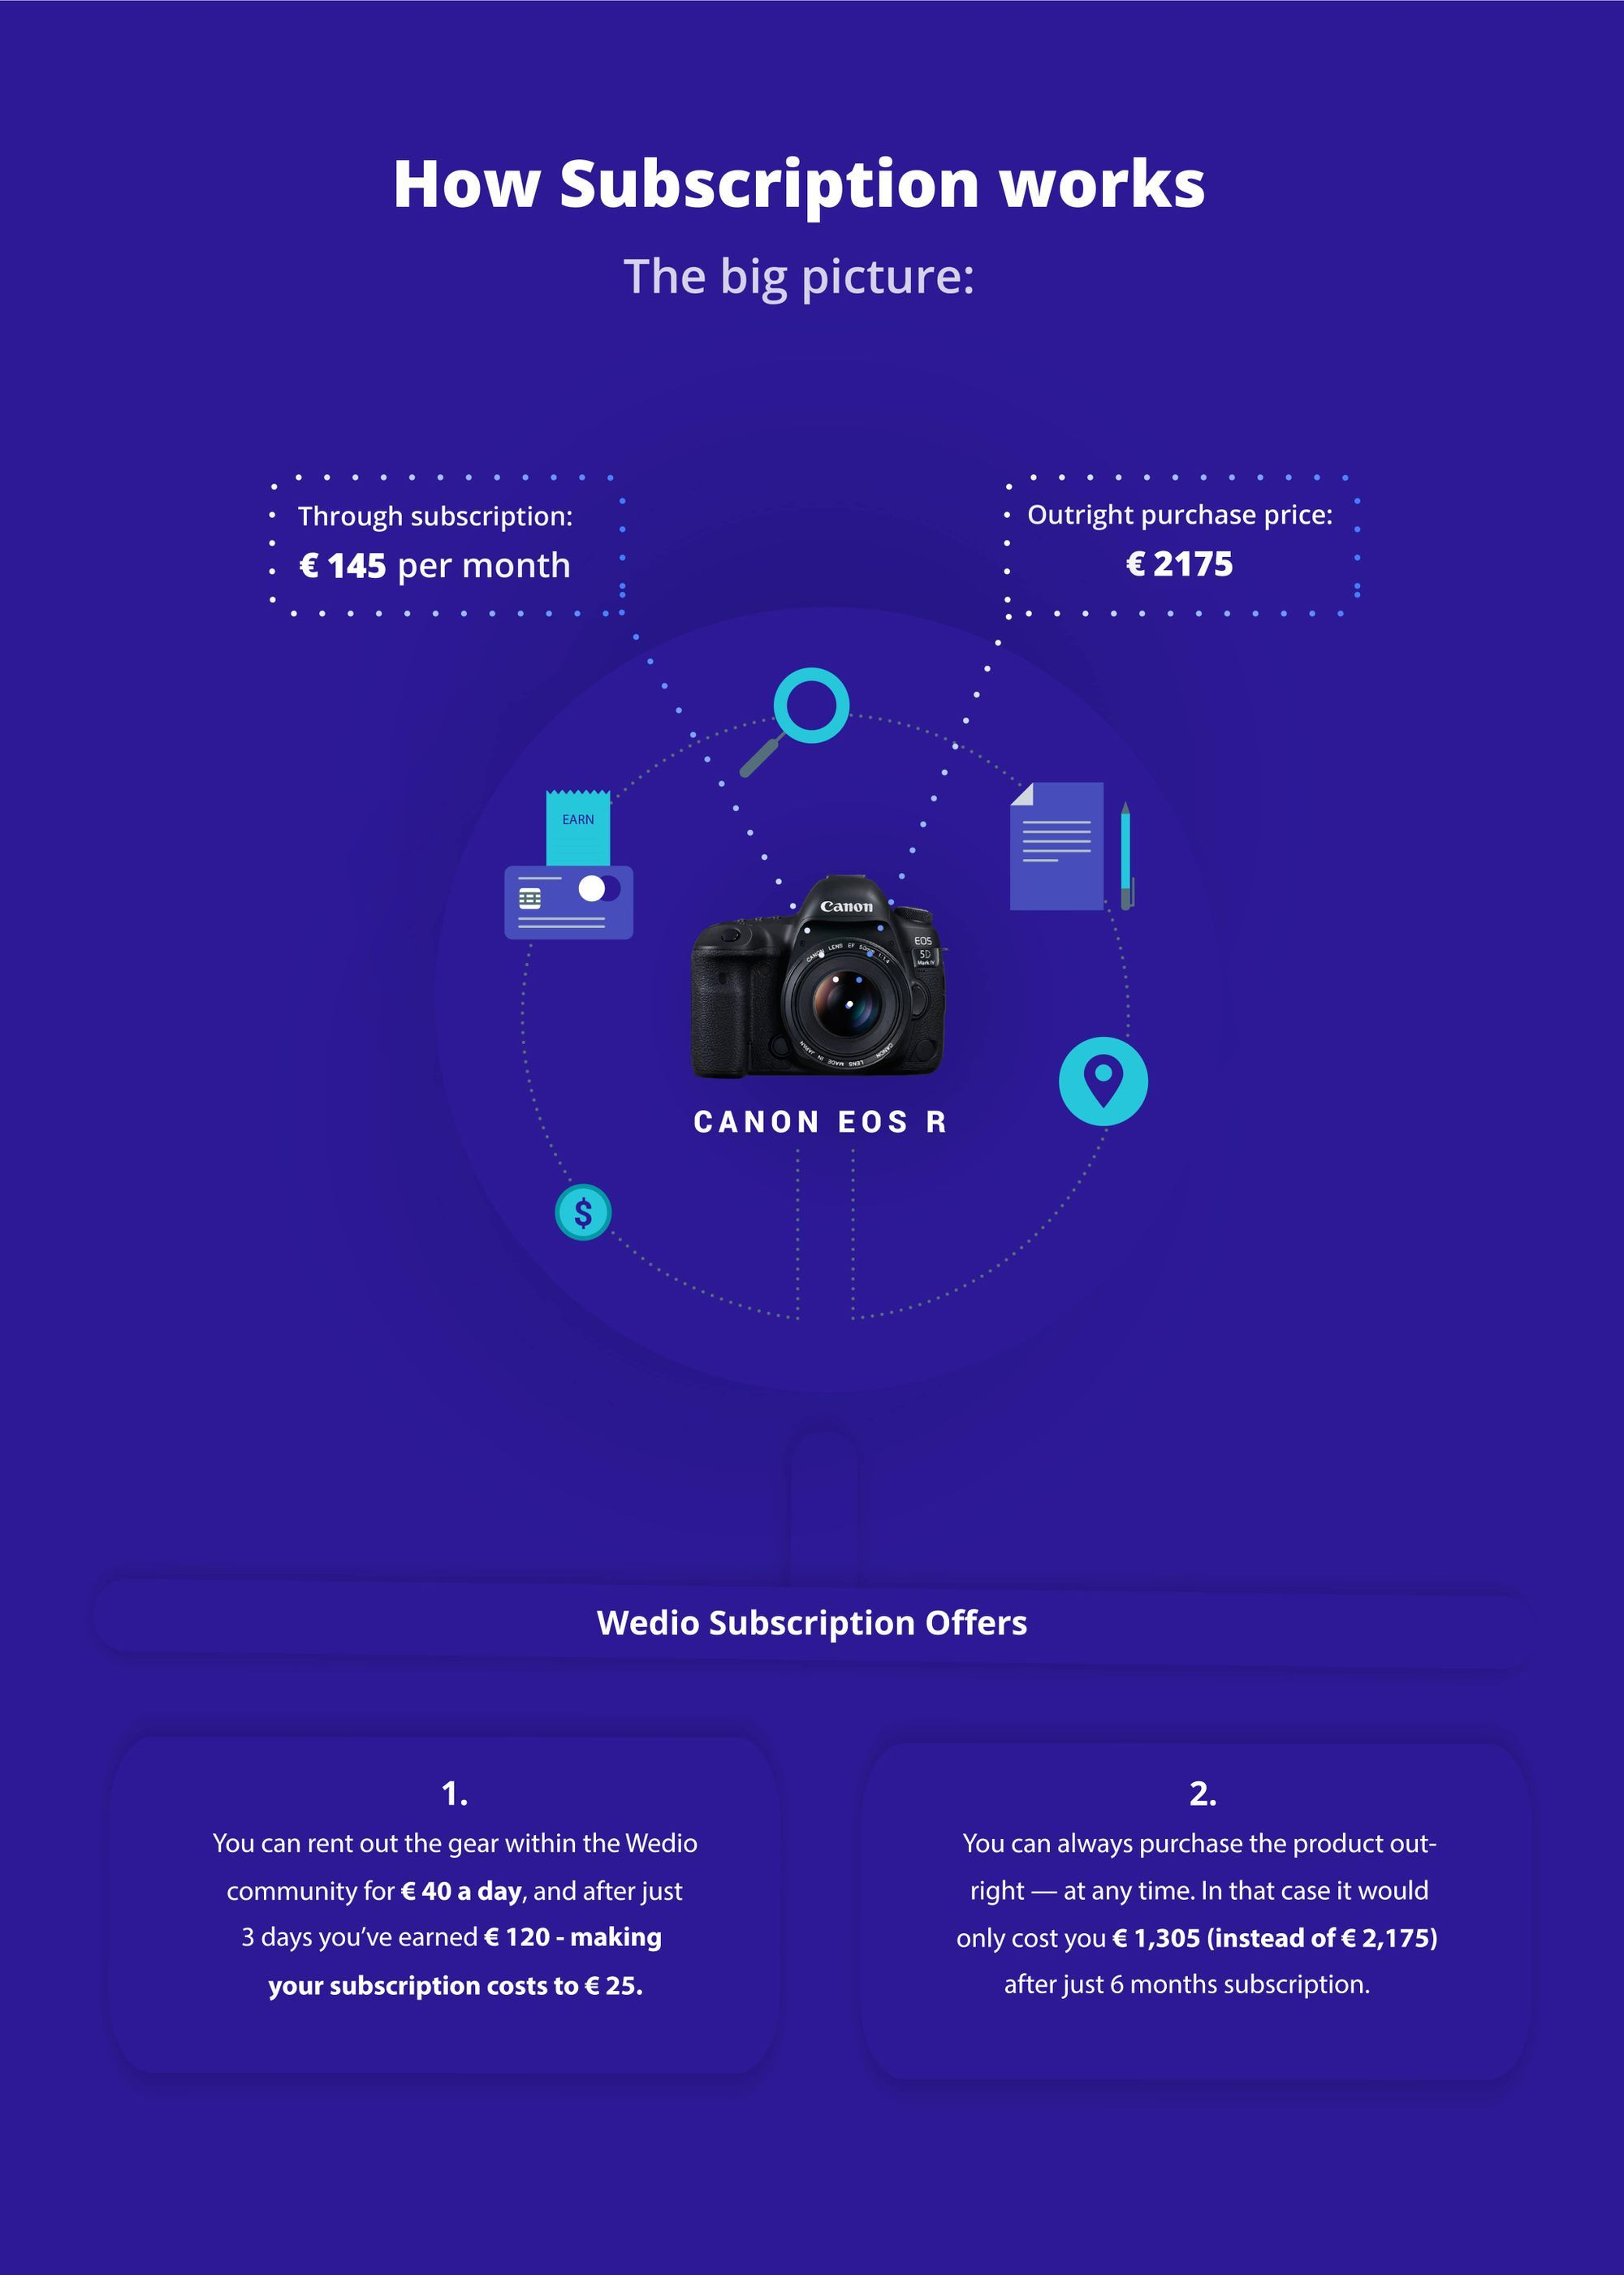 How subscription works at Wedio